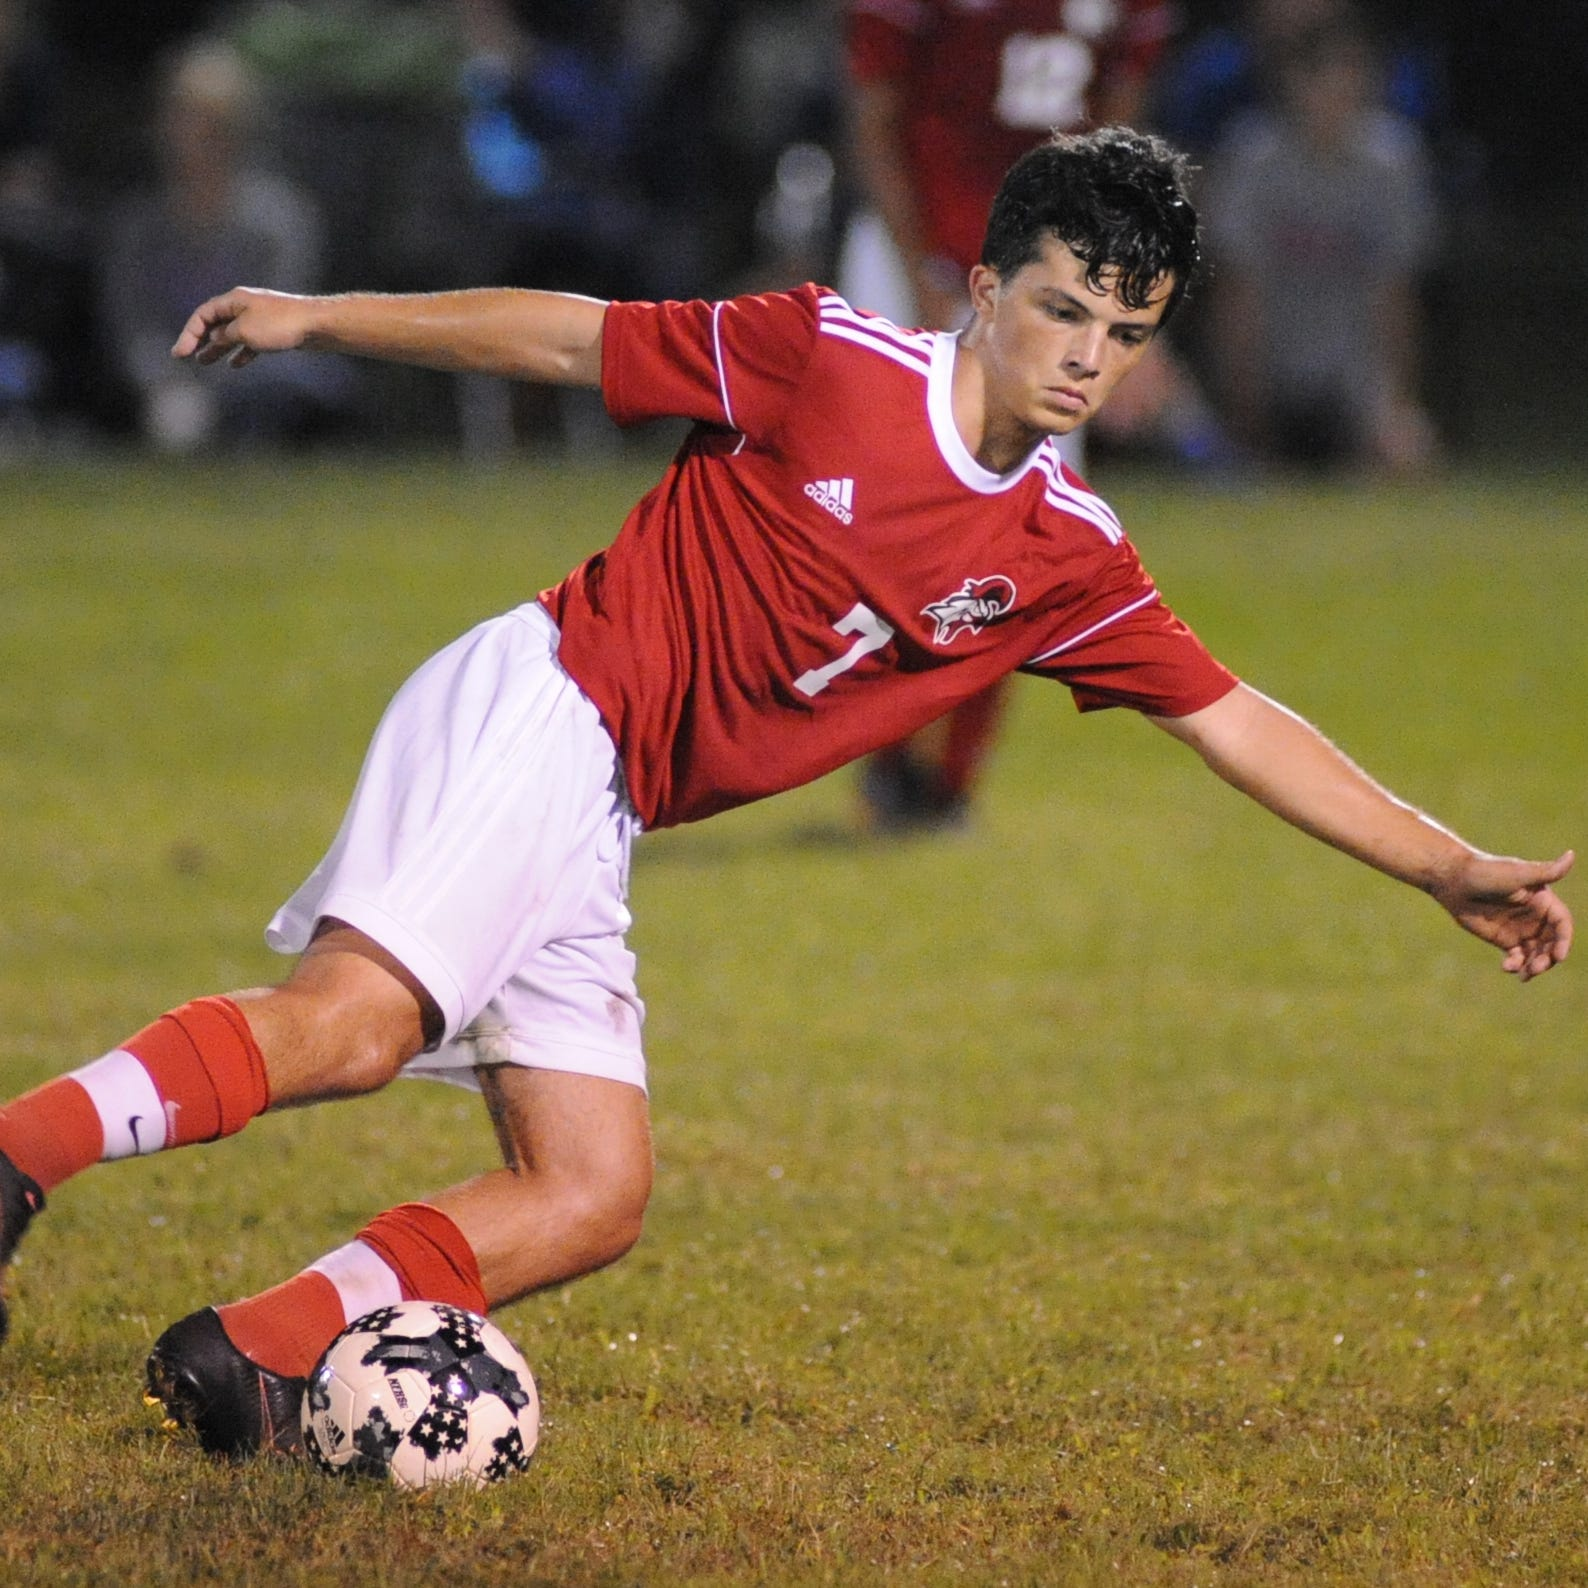 H.S. boys' soccer: Vineland continues upwards trend